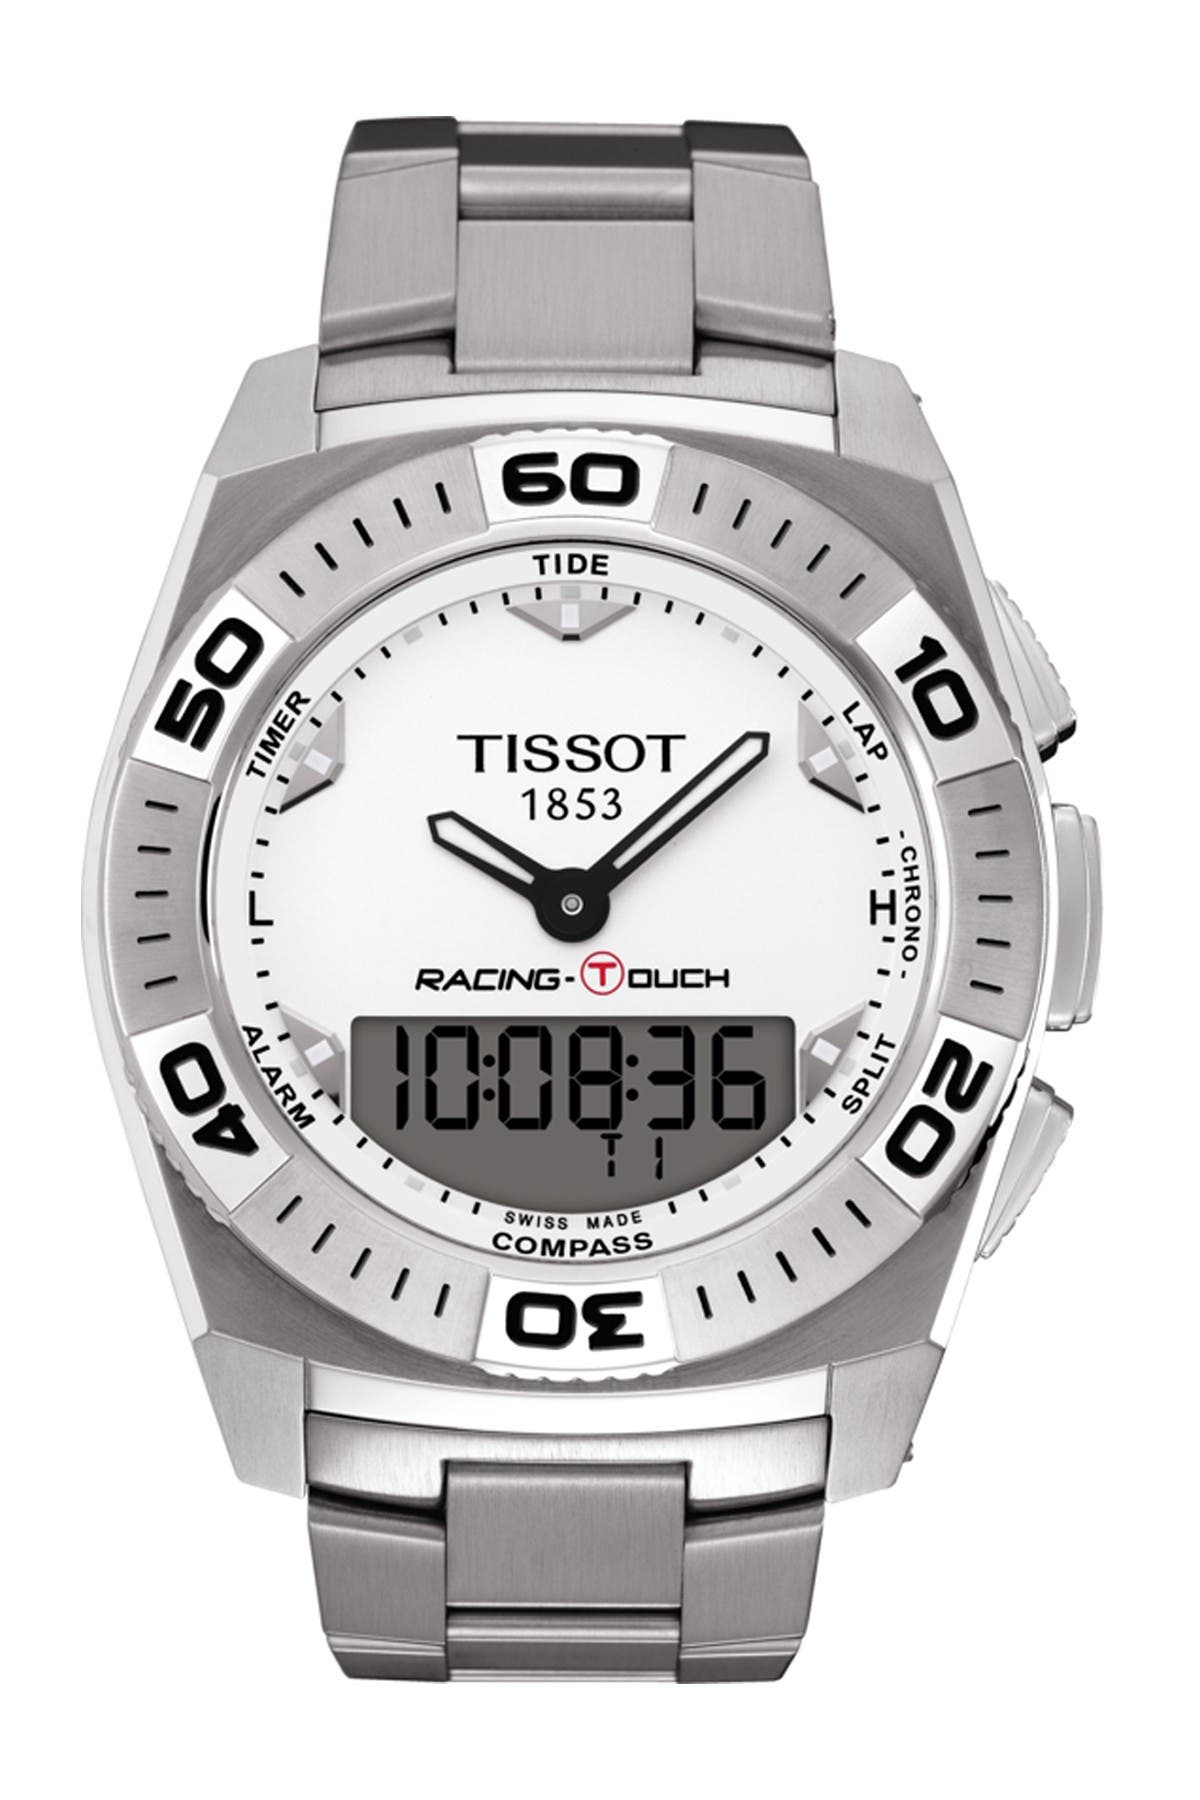 Image of Tissot Men's Racing Touch Watch, 43mm